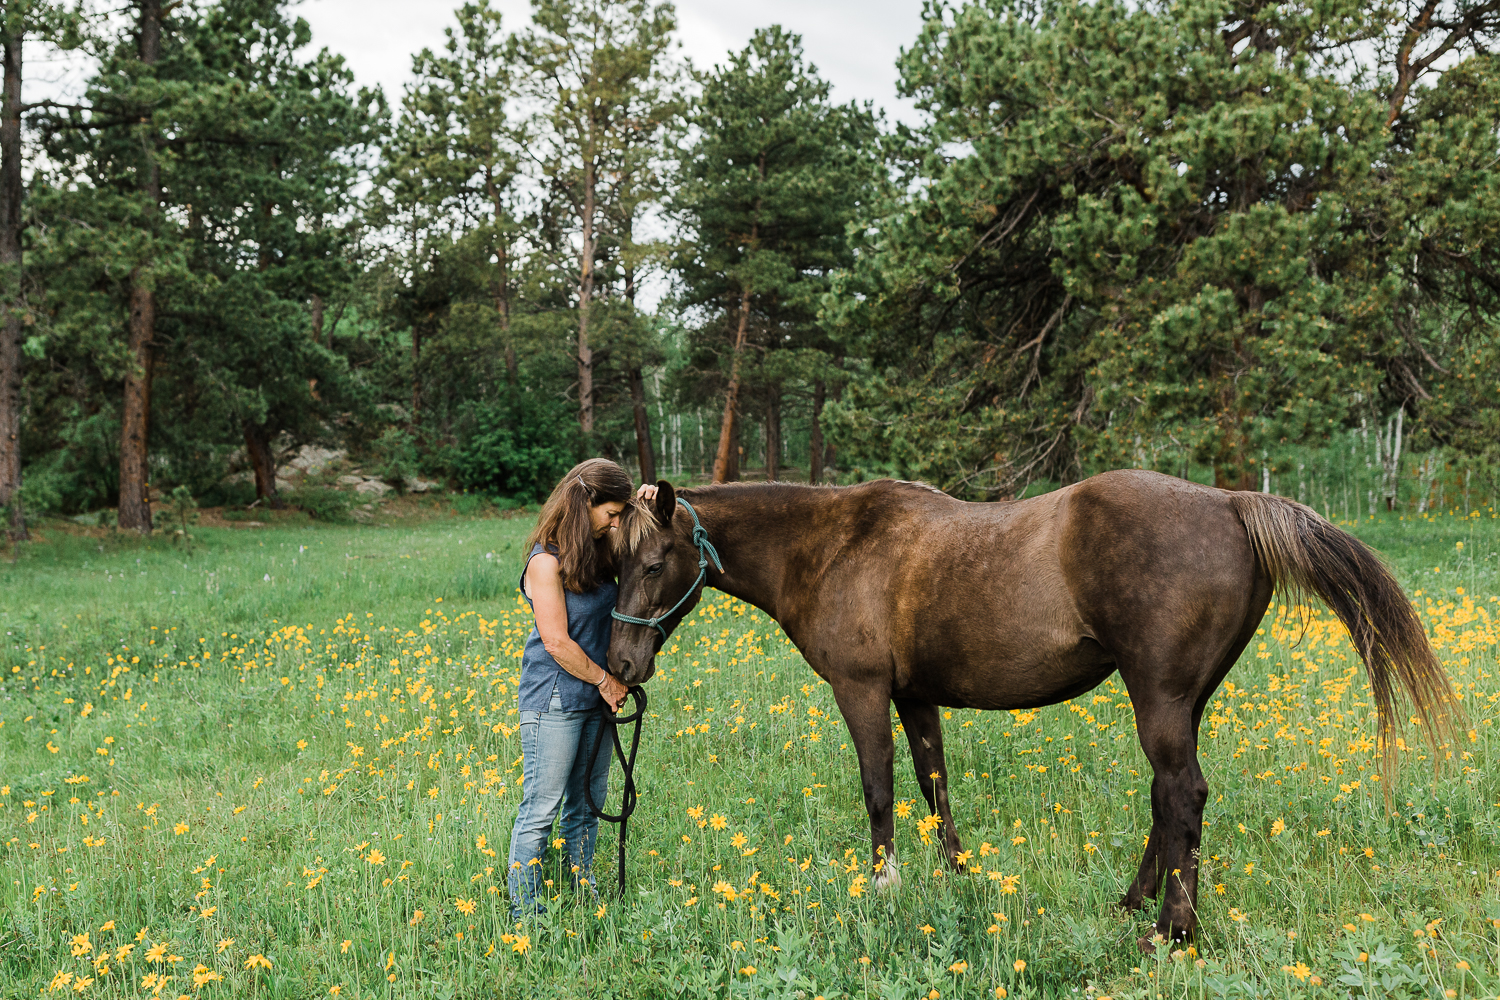 denver_equine_photography_023.jpg